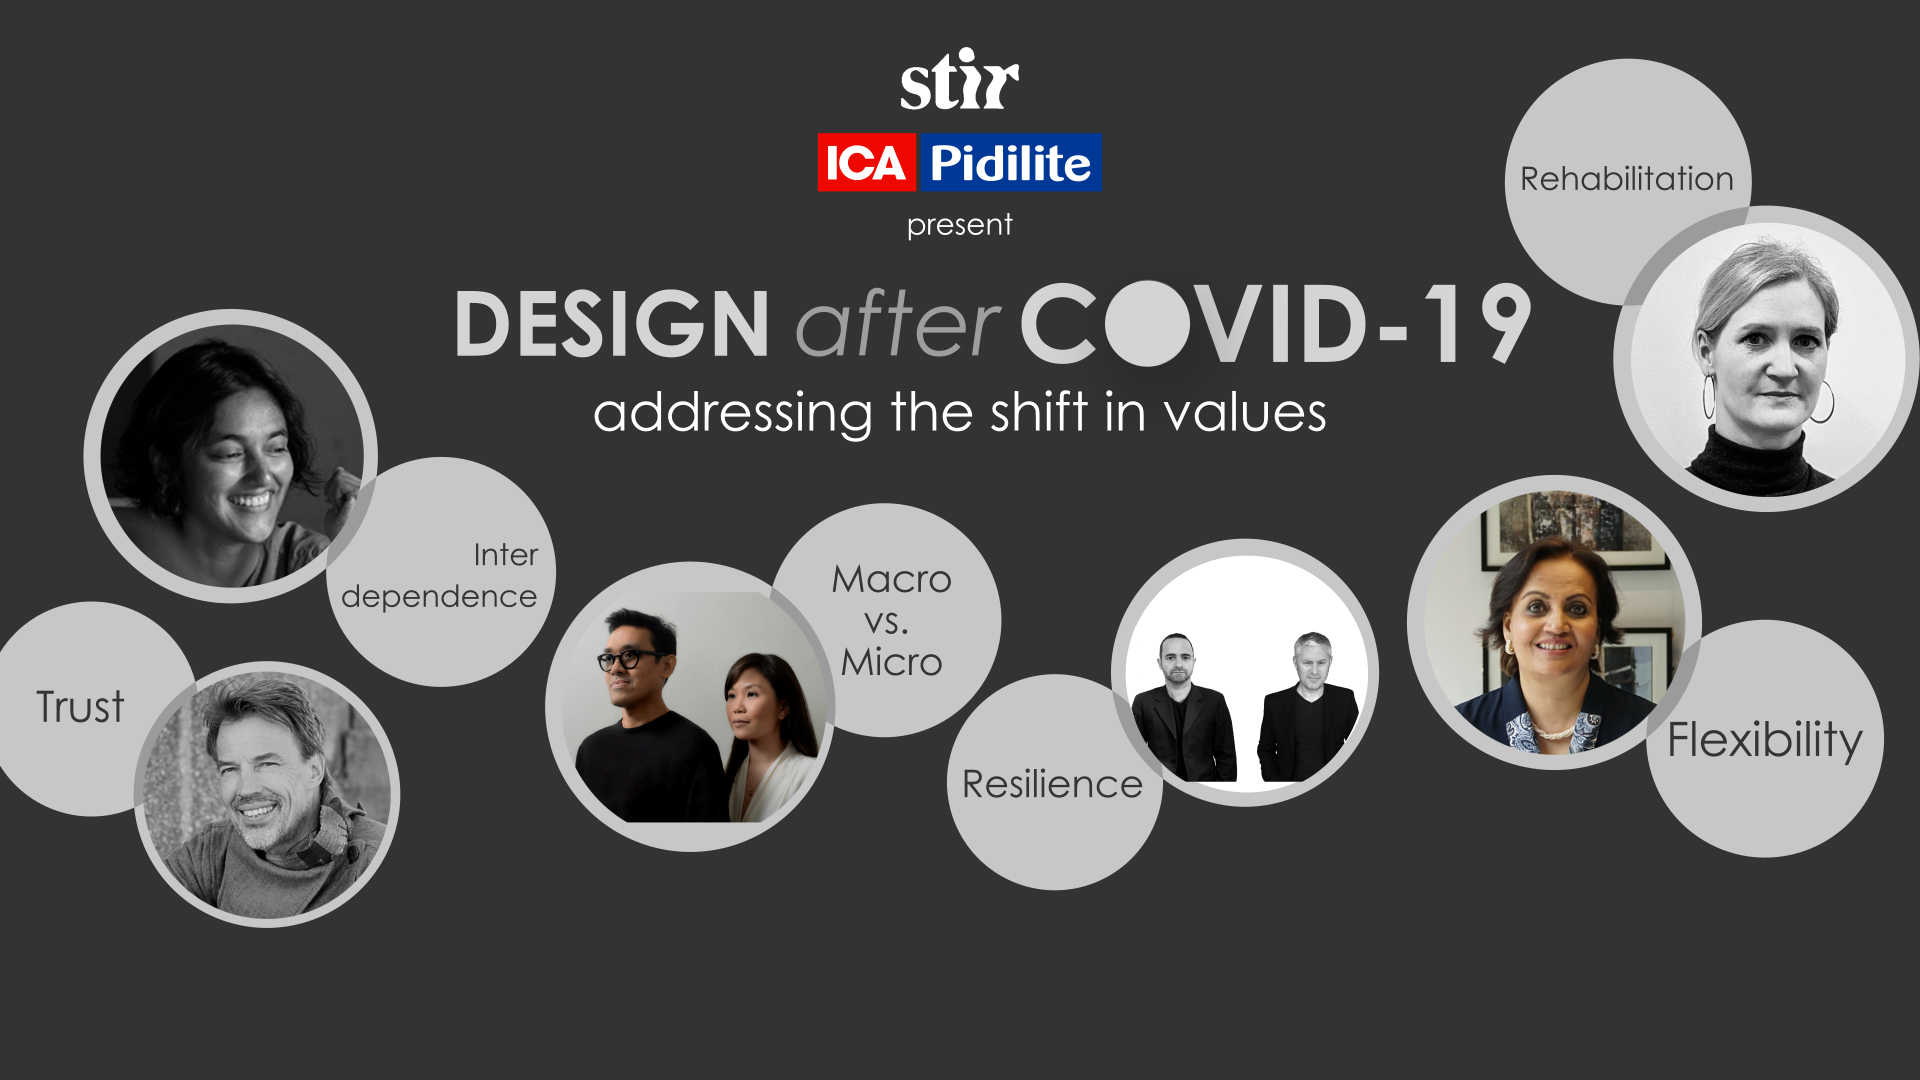 Design after COVID-19: Experts examine what lies ahead for the industry